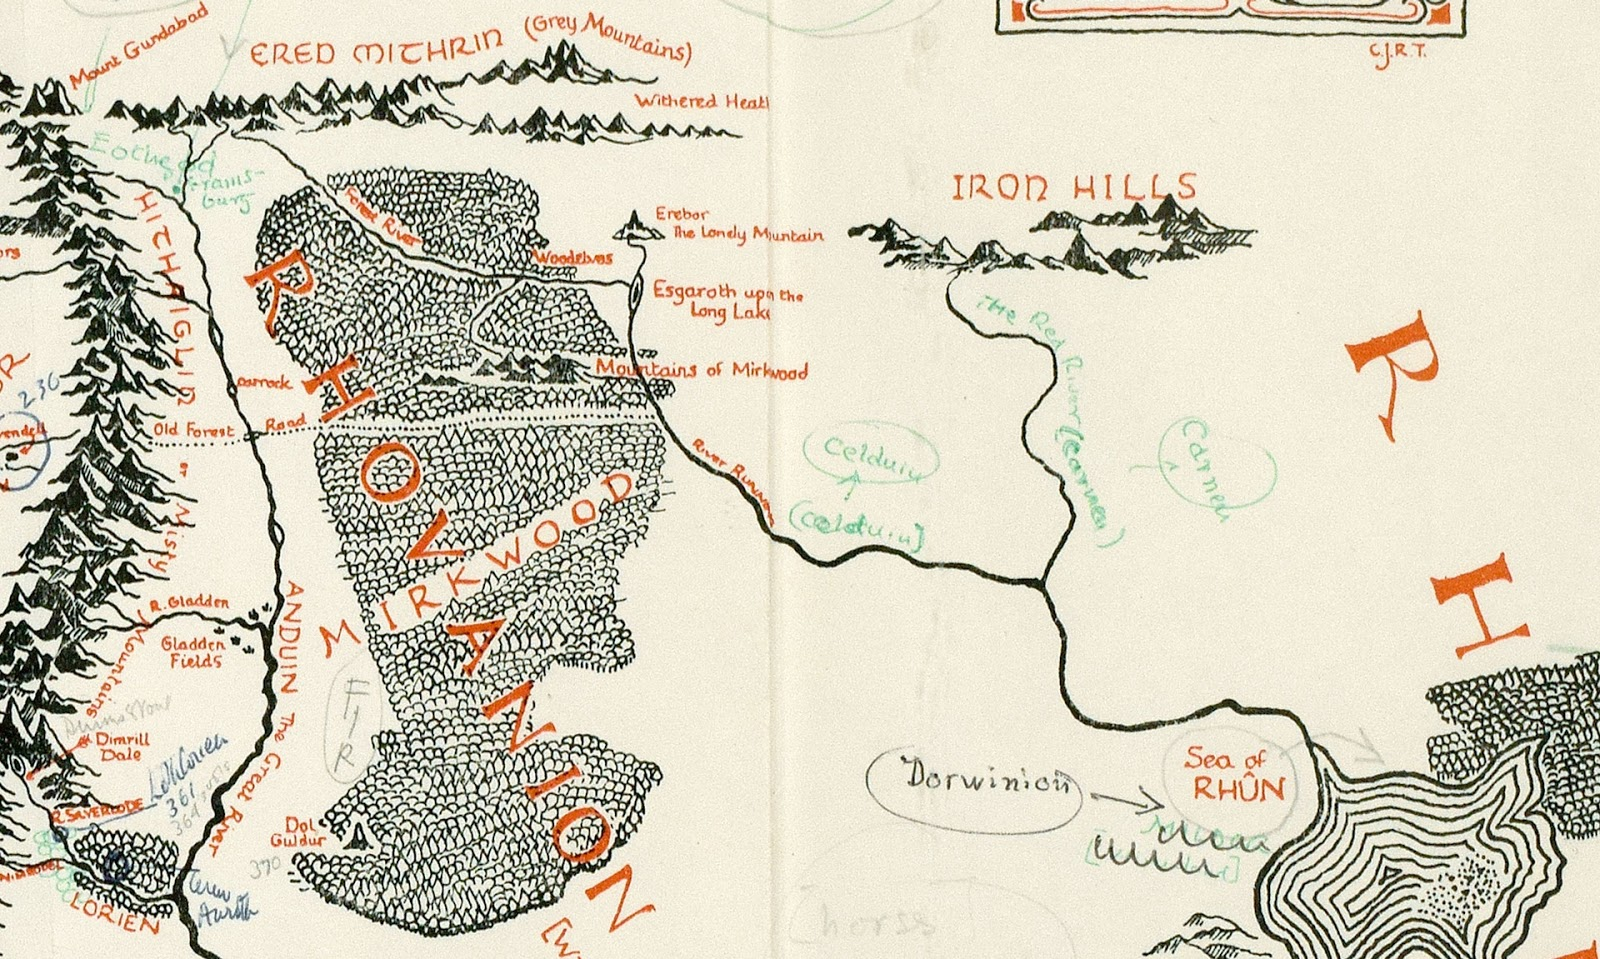 Musings of a Tolkienist: Middle-earth Map Annotated by Tolkien ...